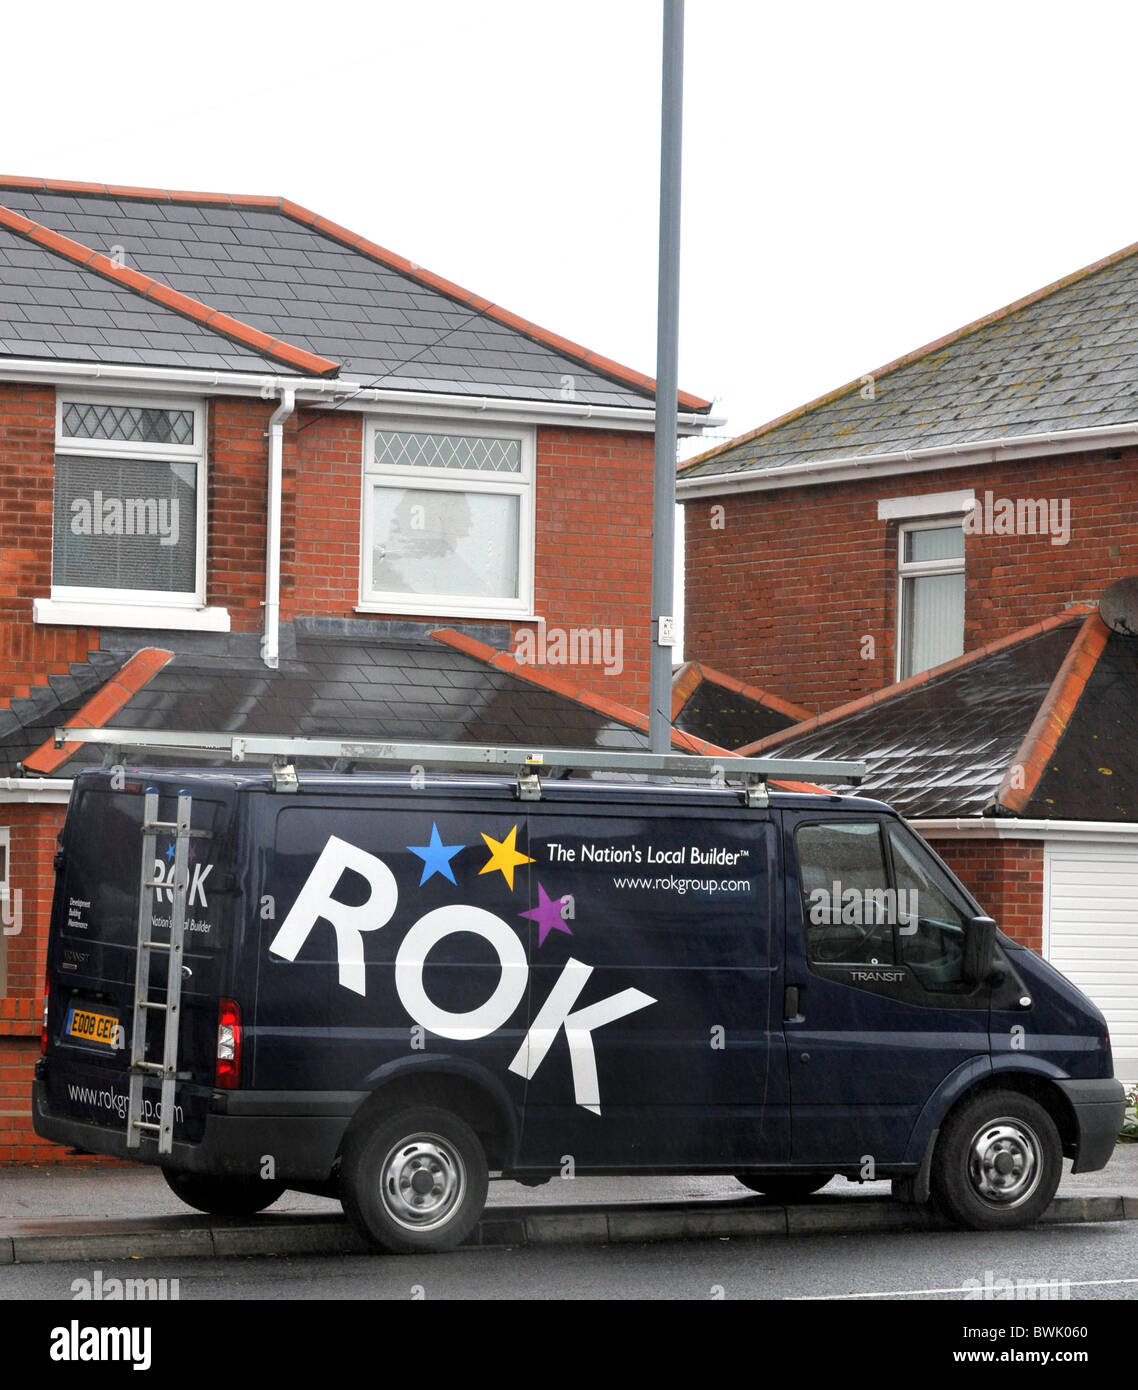 ROK building company, Rokgroup, UK - Stock Image